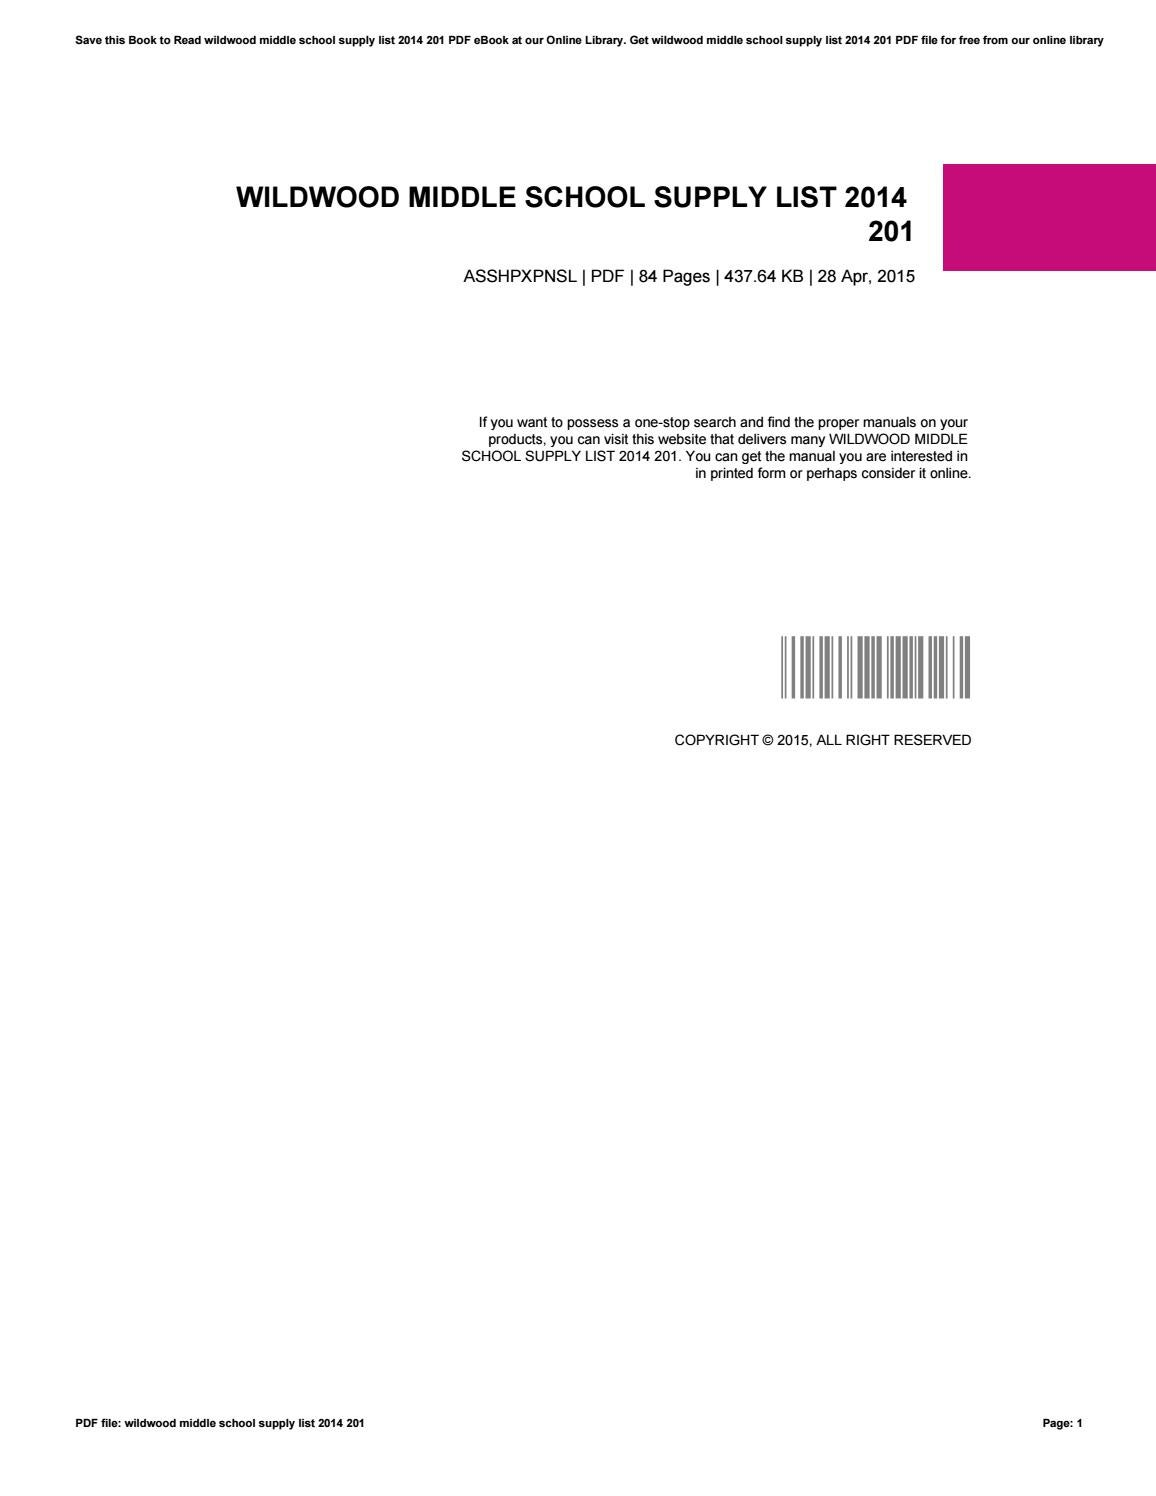 Wildwood Middle School Supply List 2014 201 By Nickolasbernardo1600